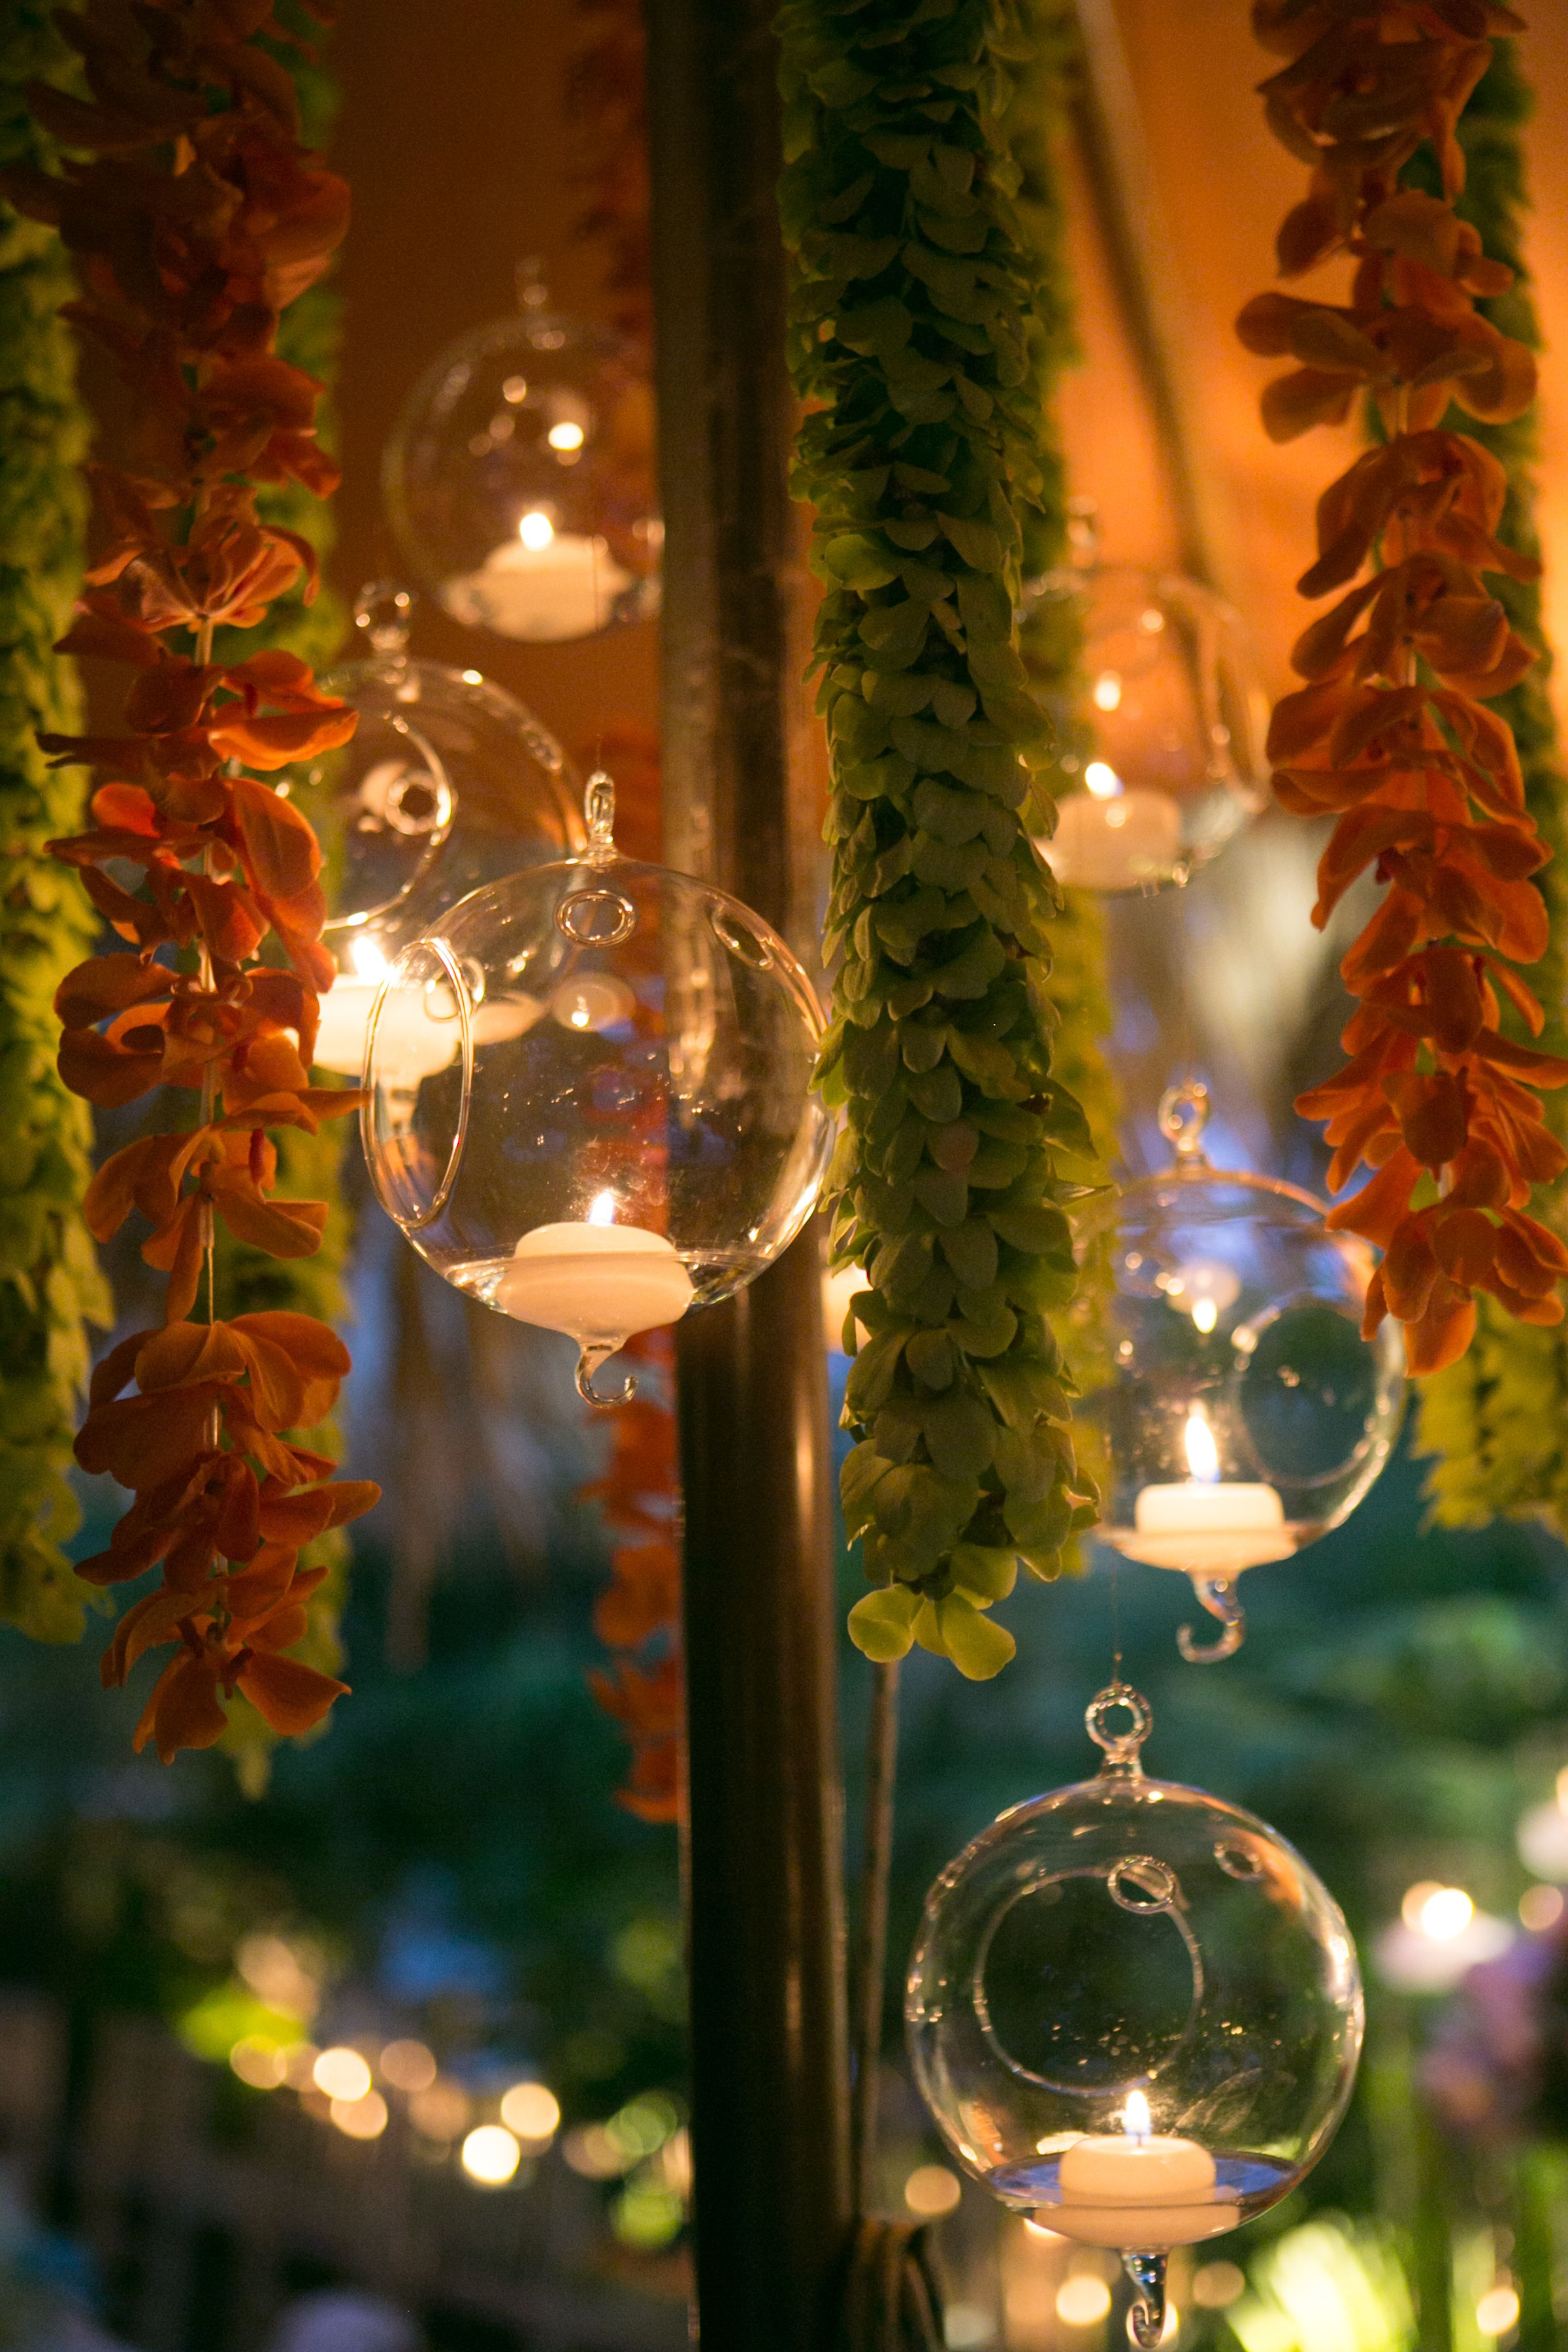 Hanging lights wedding decor  Beautiful Tea Lights  Weddings  Pinterest  Themed weddings and